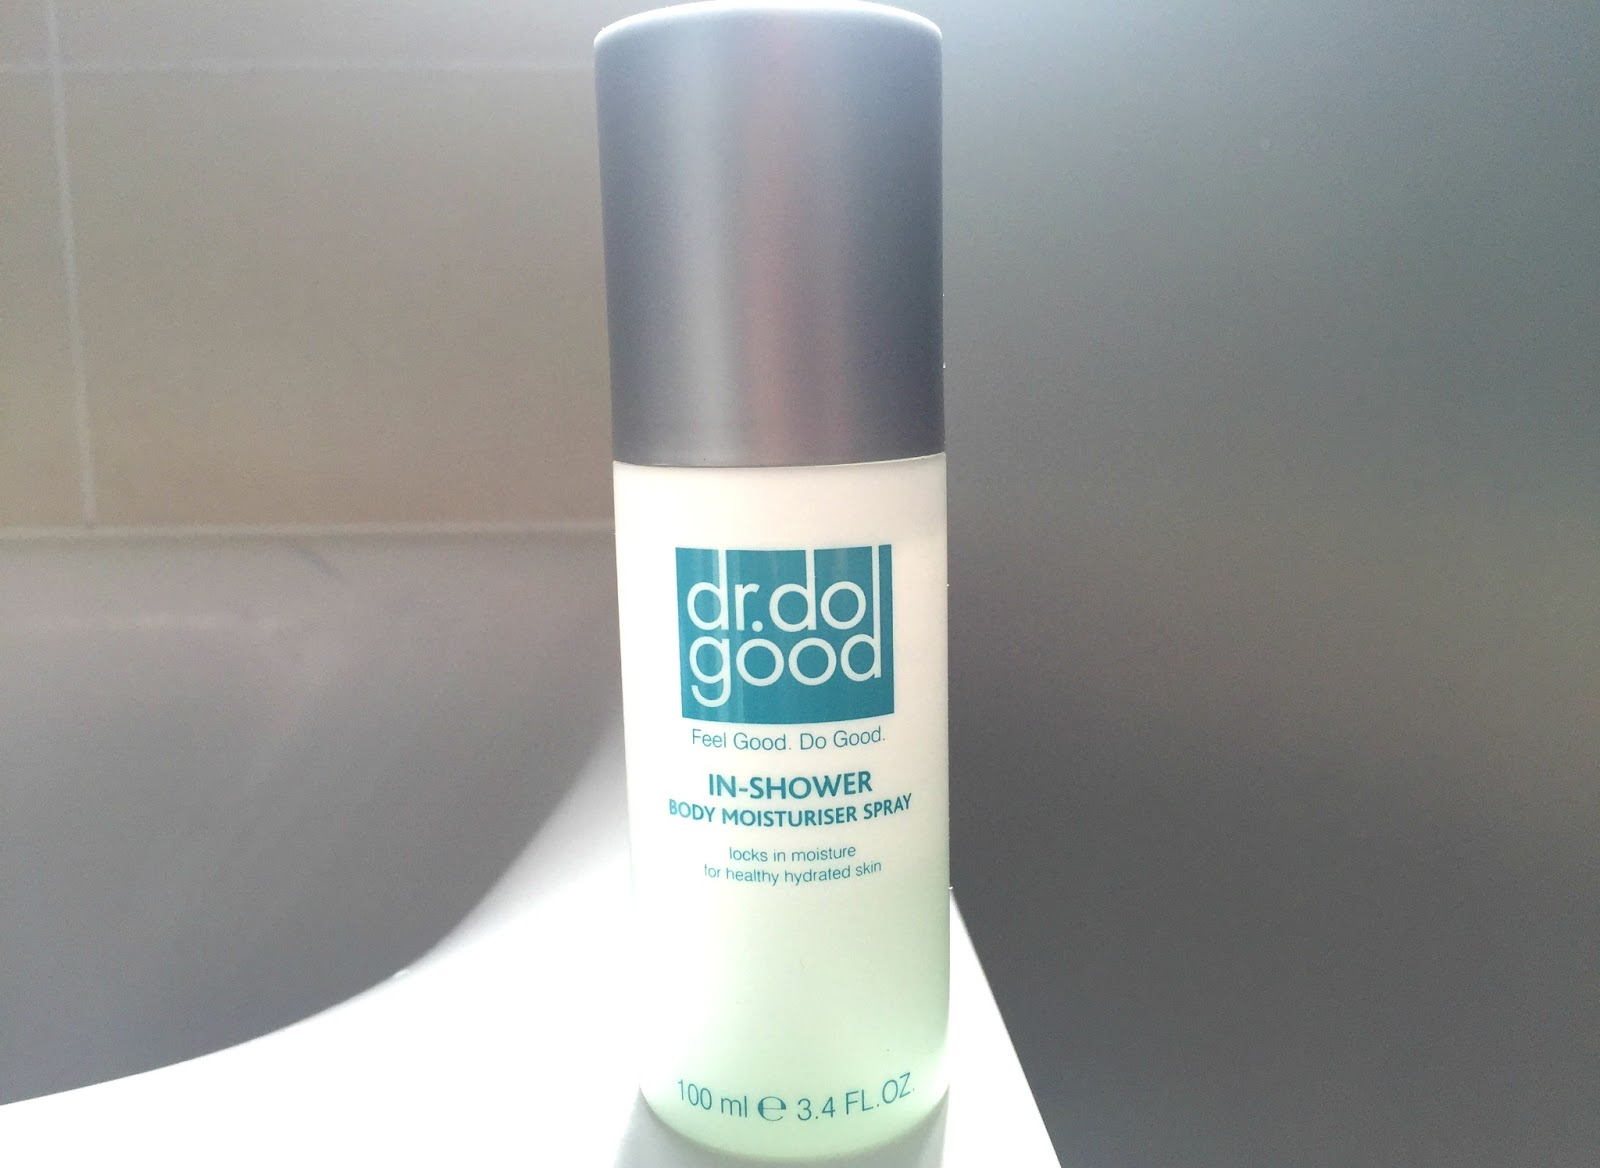 Dr Do Good In-Shower Body Moisturiser Spray